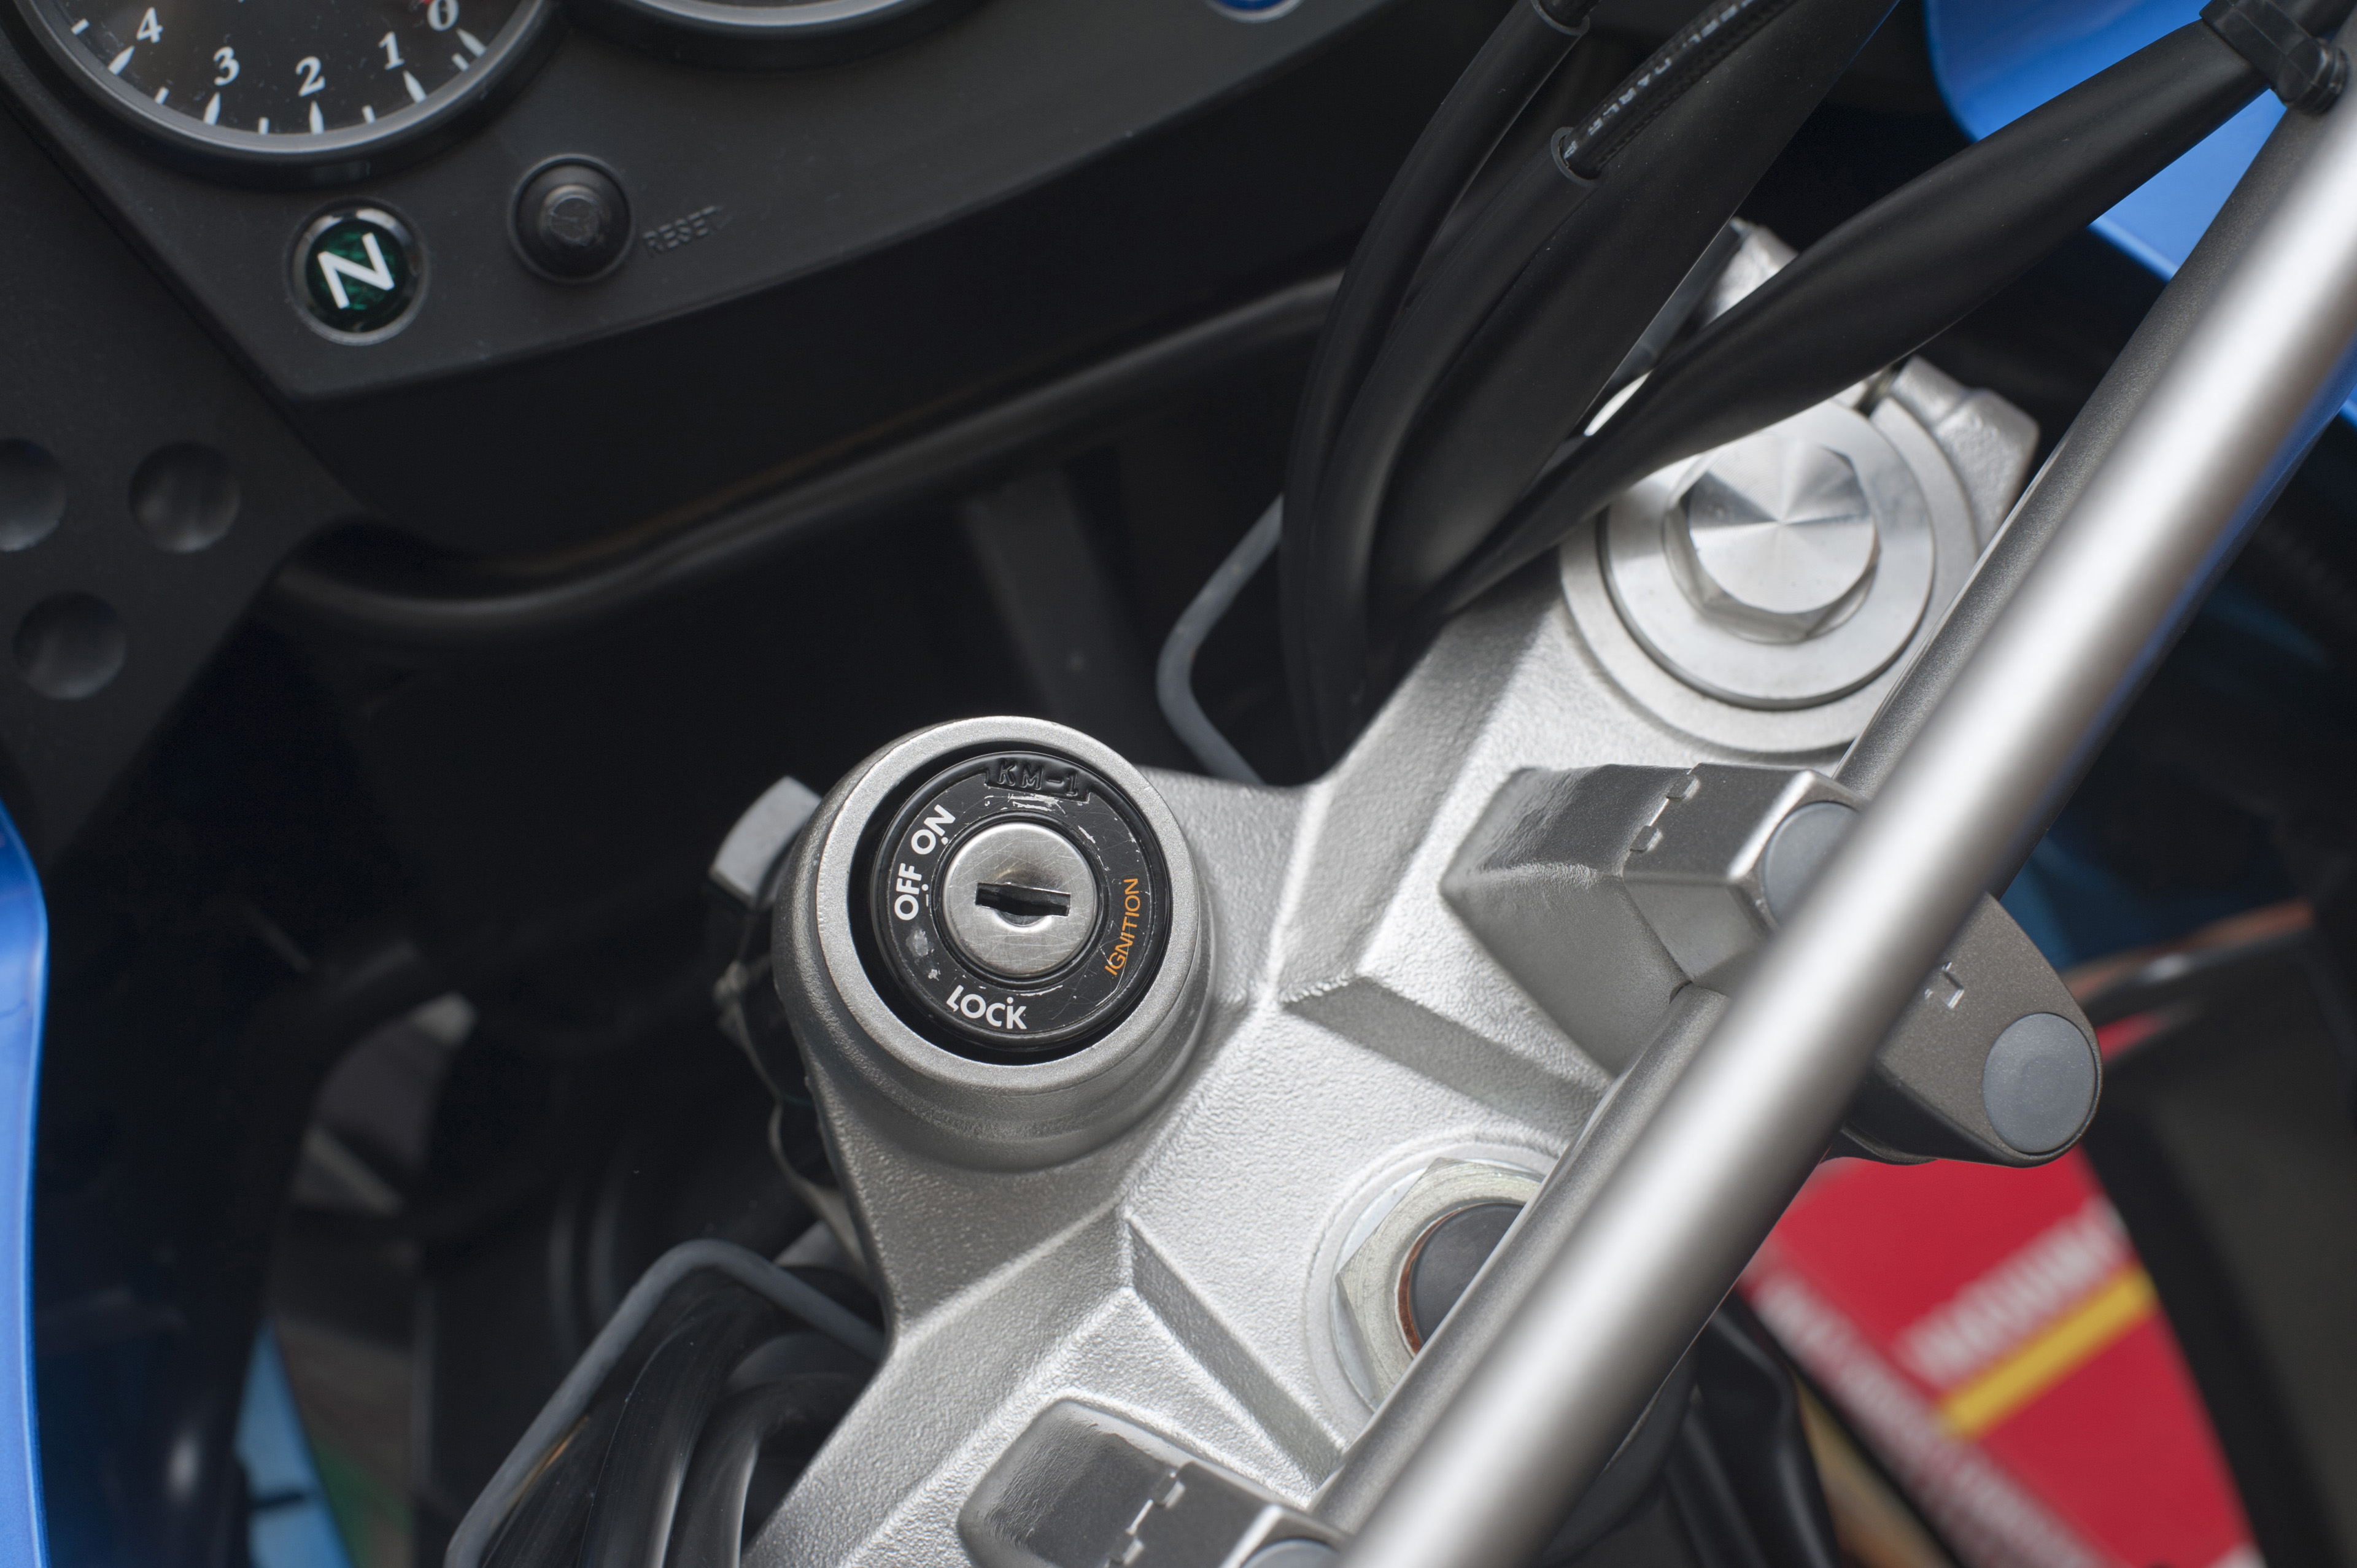 Close Up of Locking Ignition Switch in Off Position on Motorcycle Console